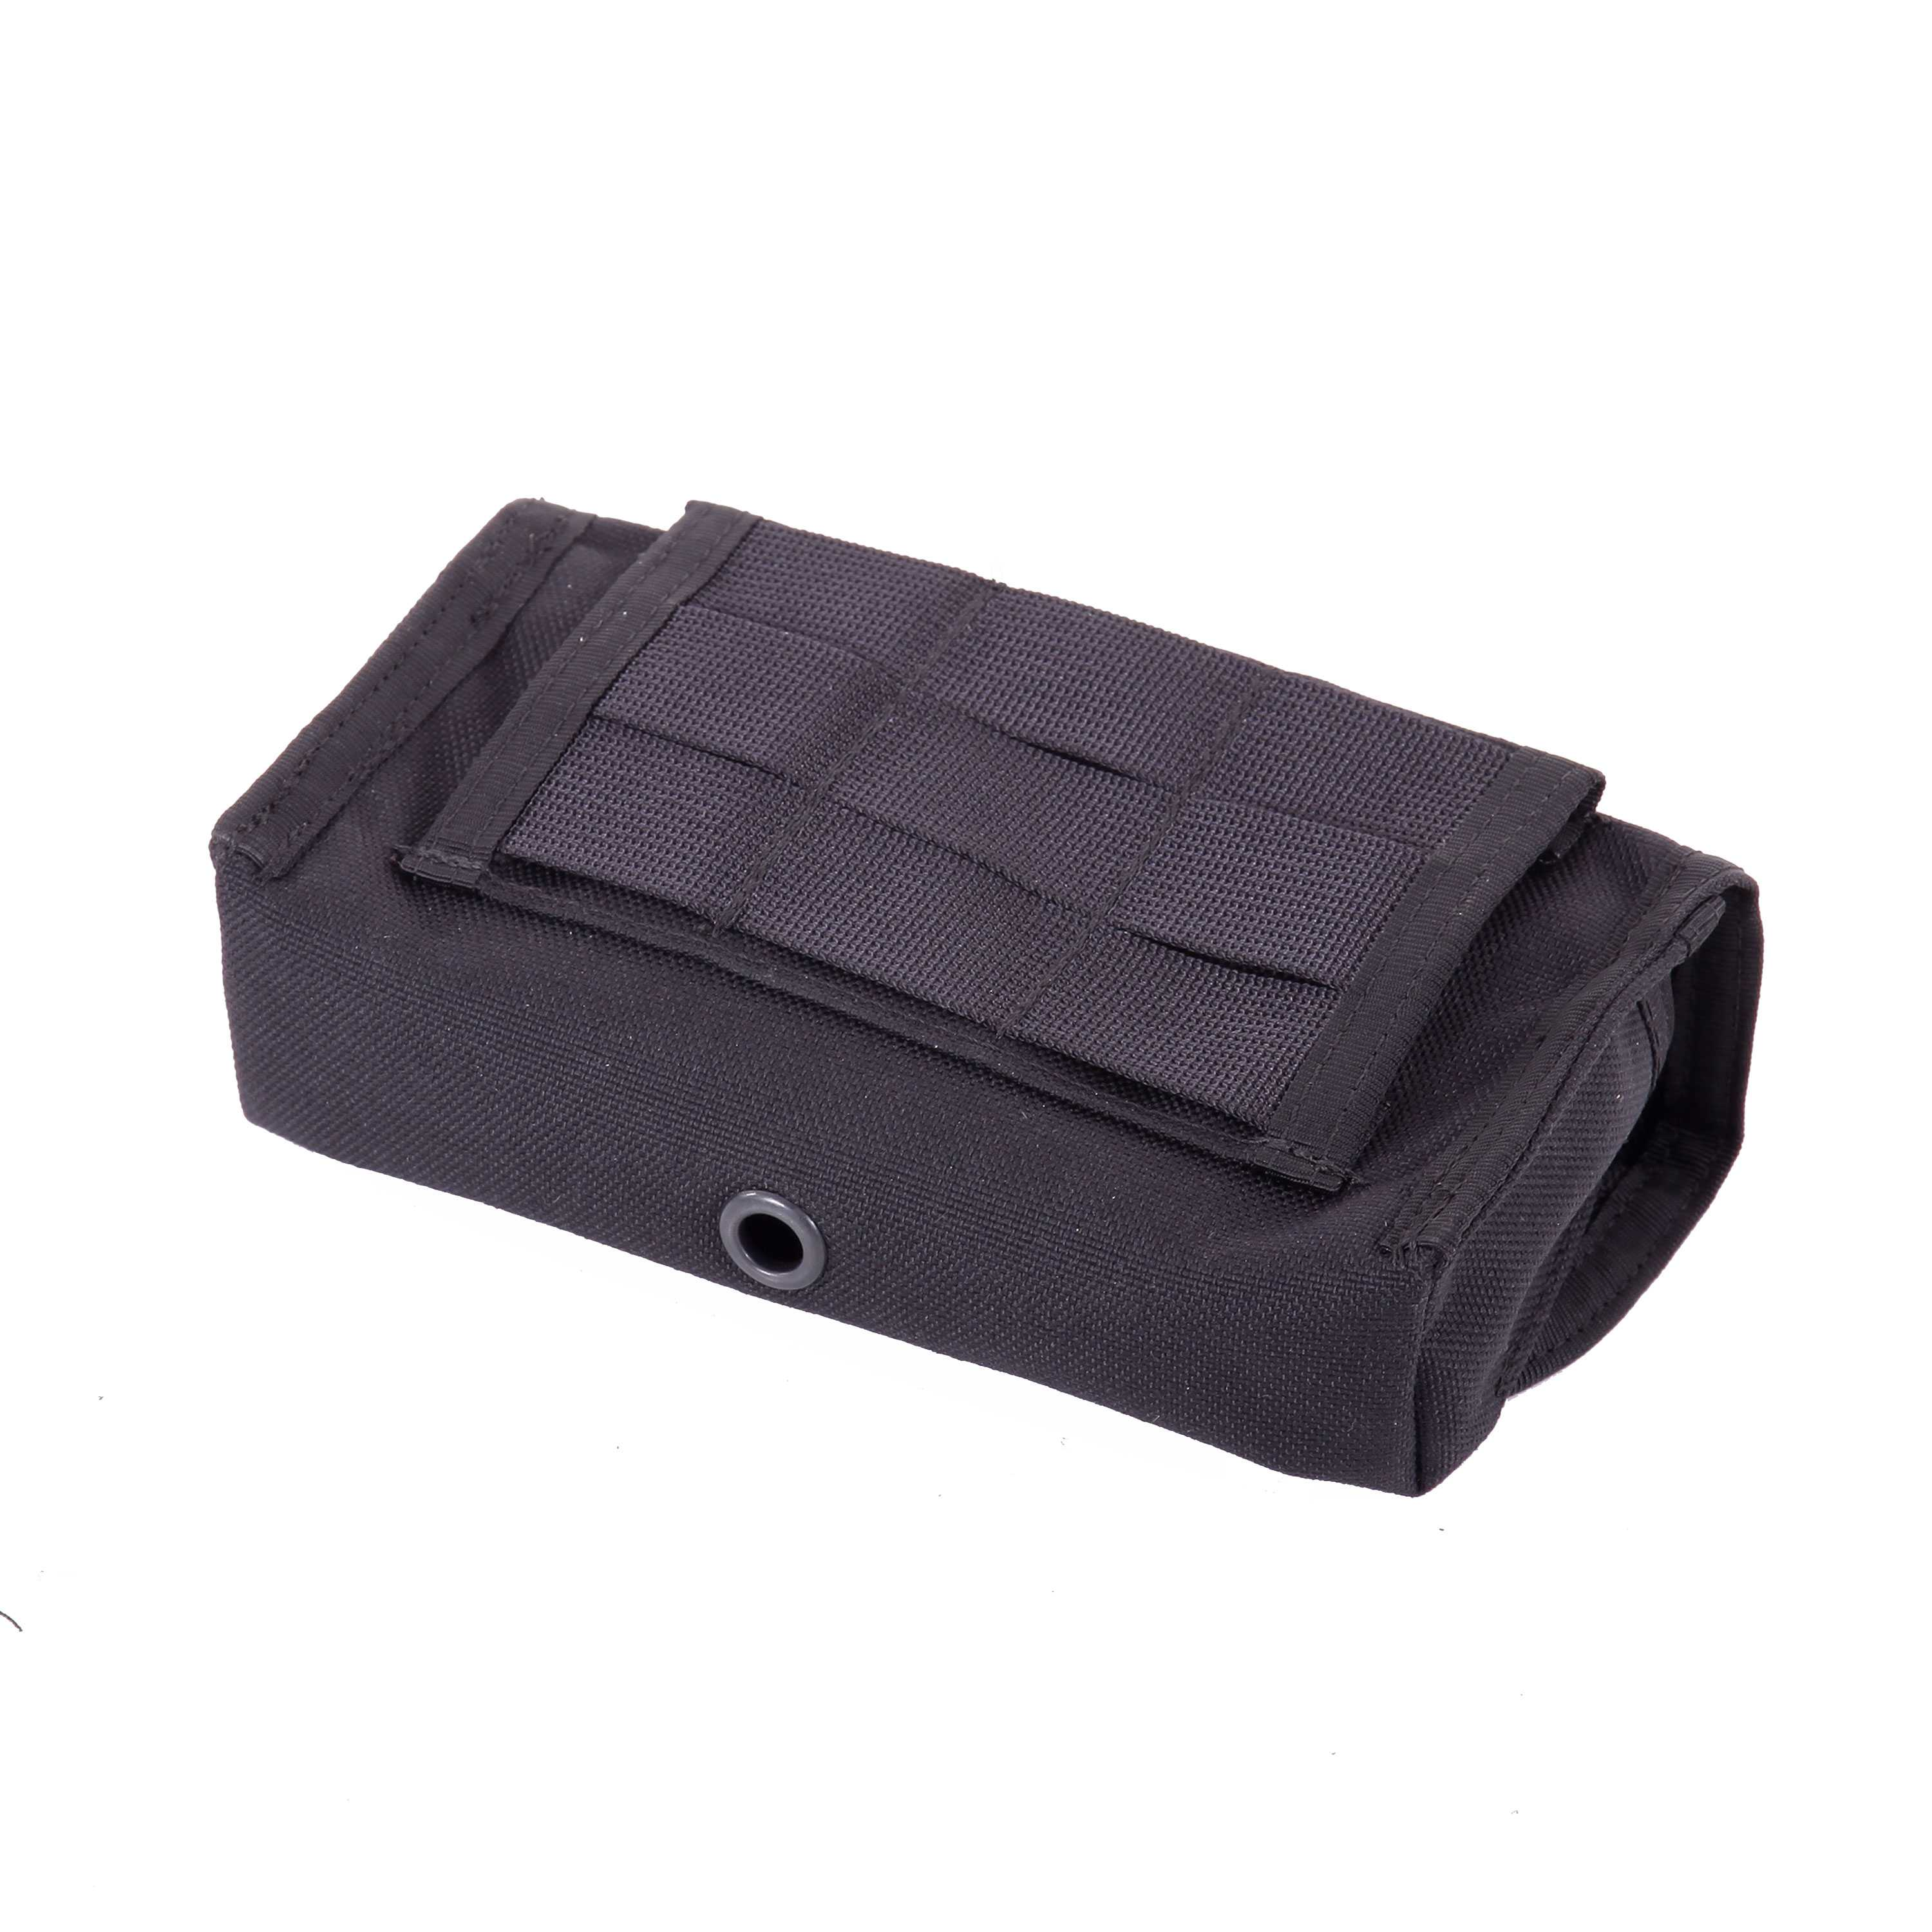 Патронташ-подсумок Kiwidition 12rnd Pouch Nylon 1000 den черный